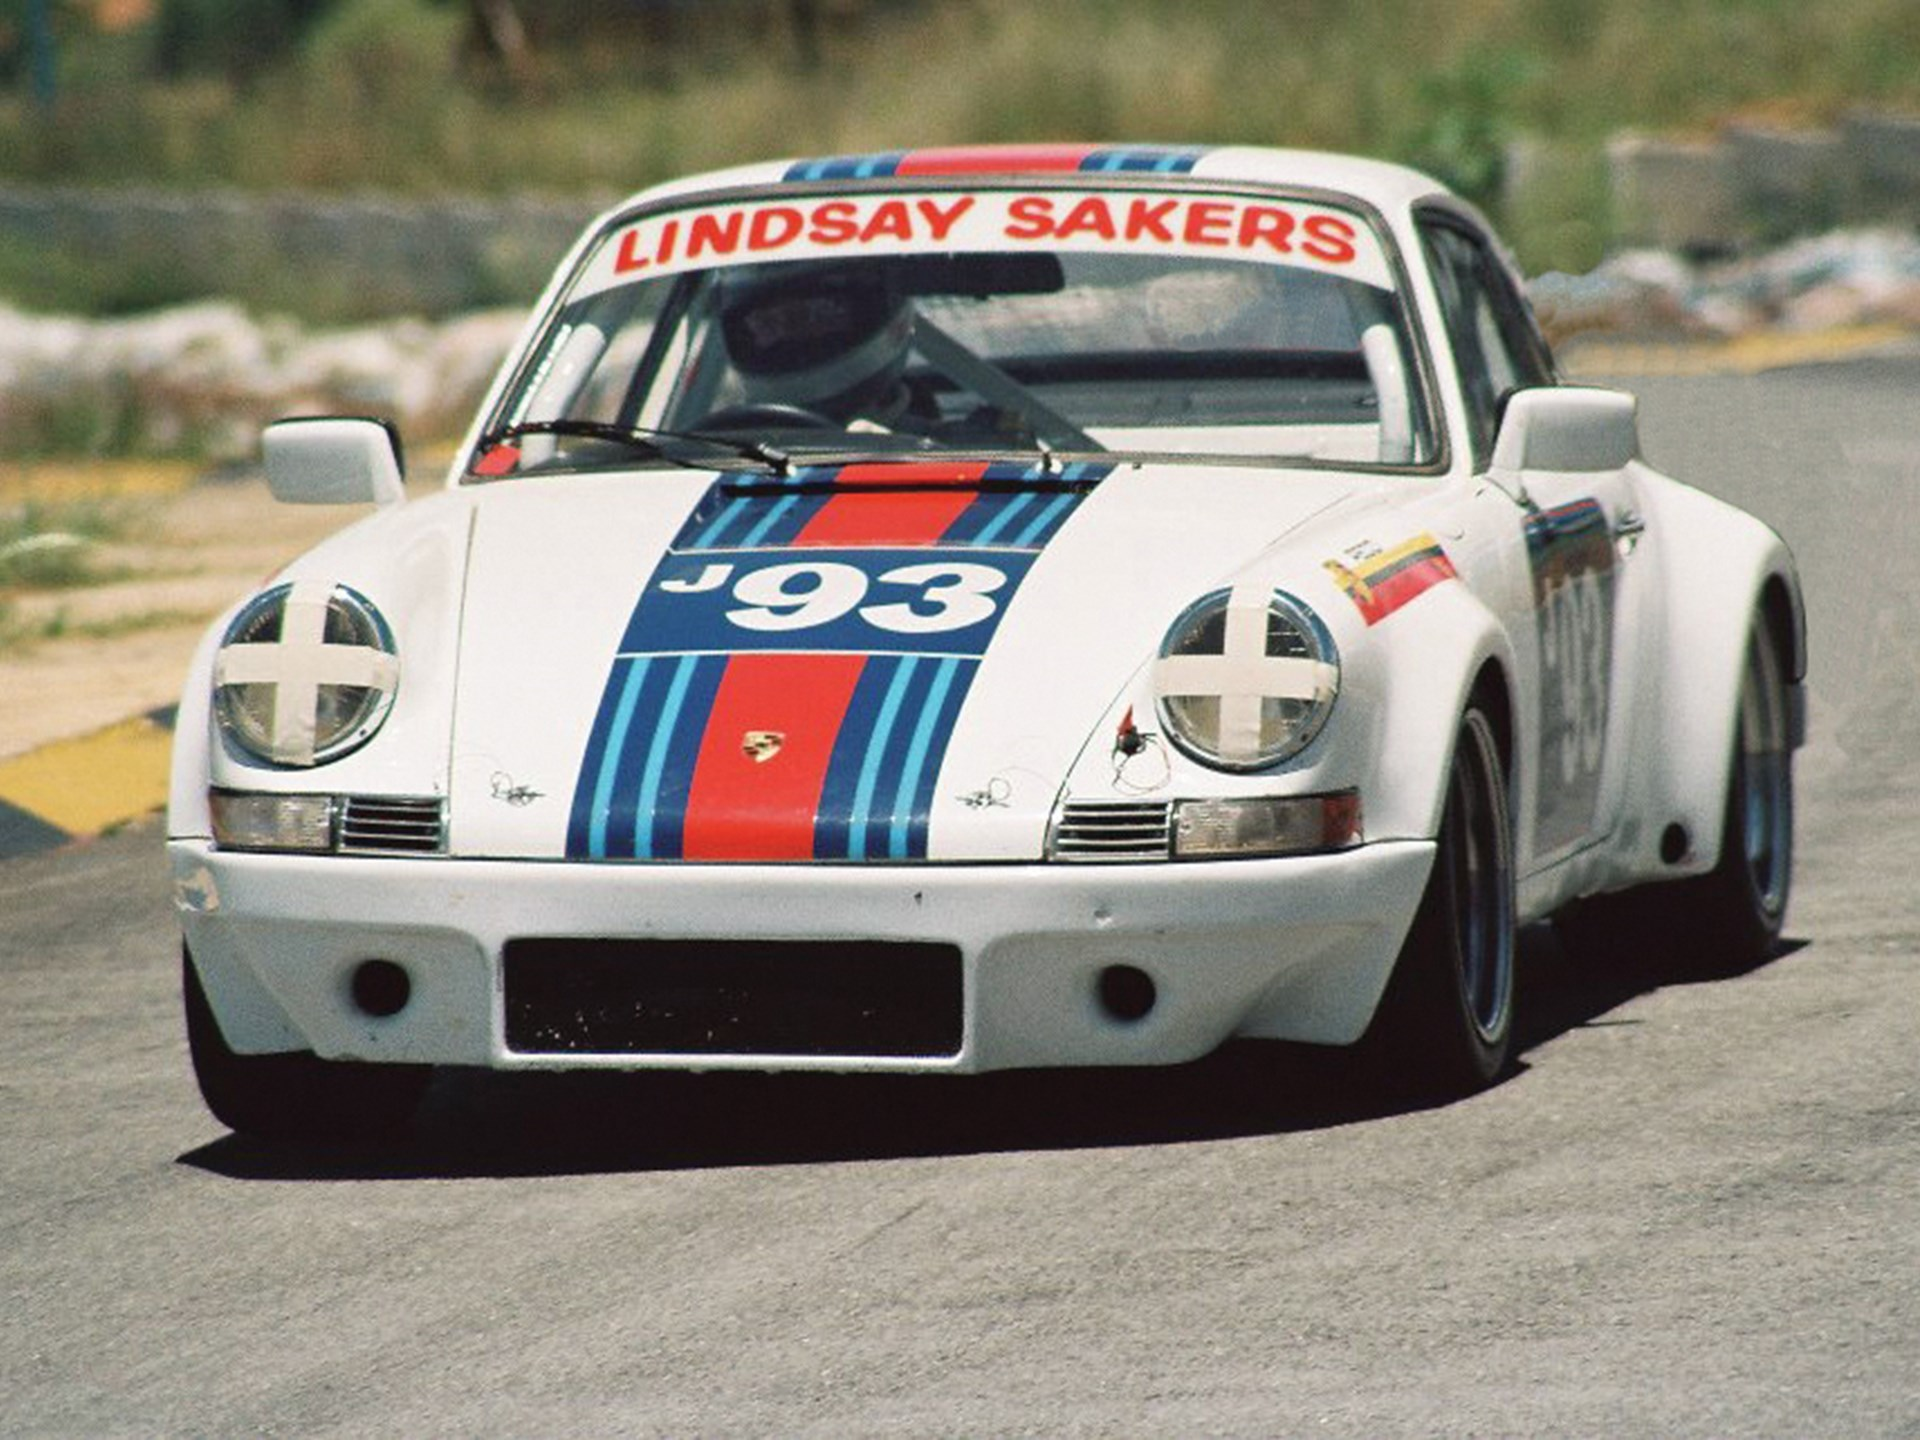 The 2.7 RS takes to the track in South Africa at Kyalami.